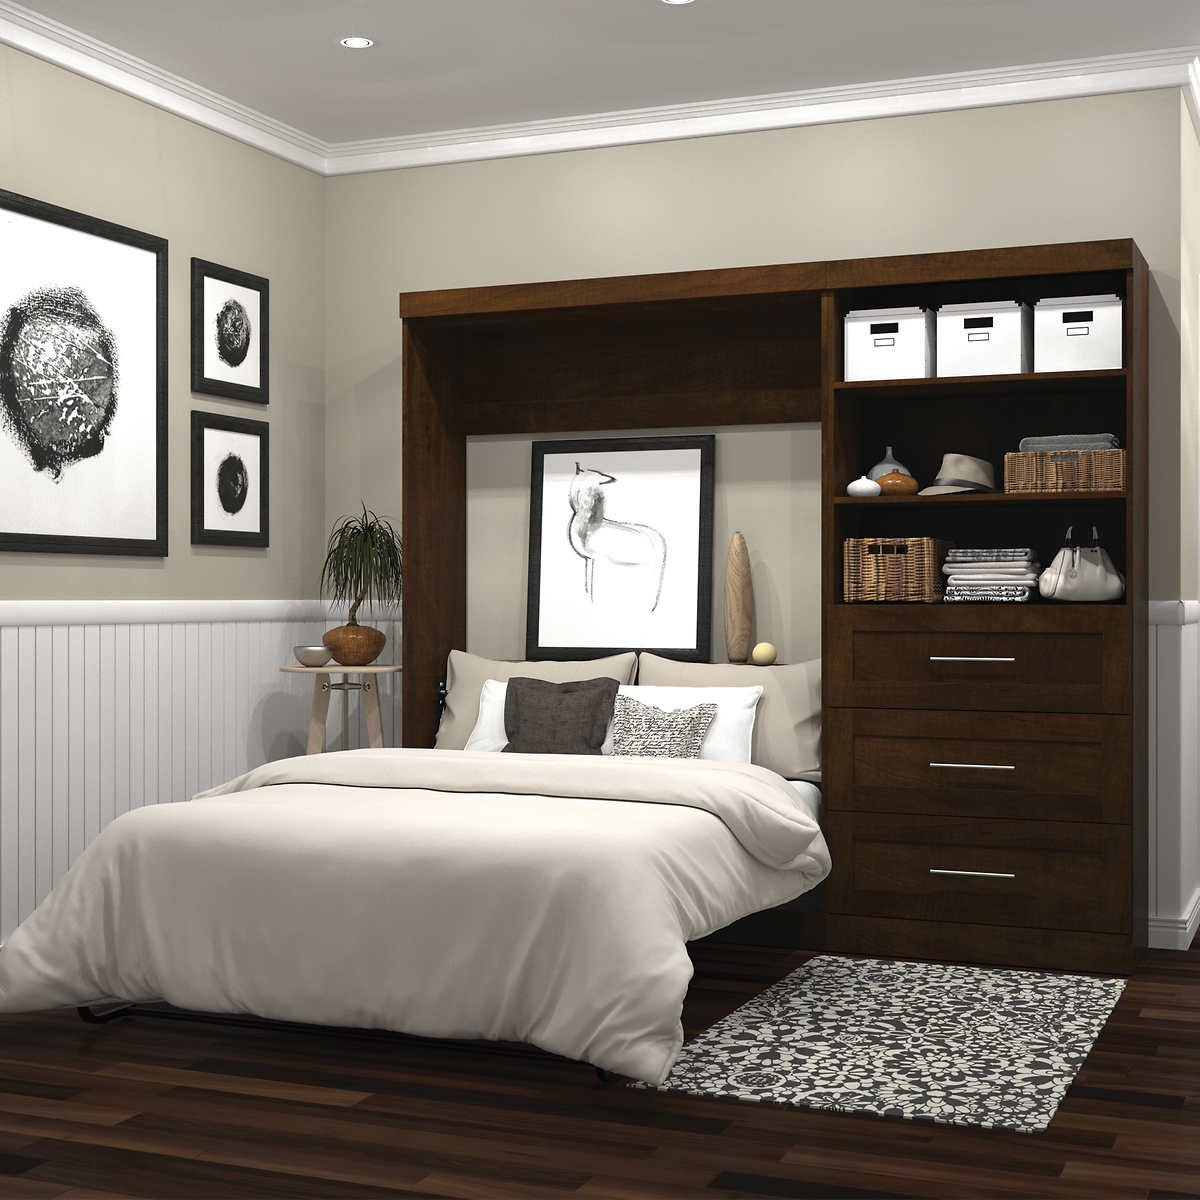 "White Washed Bedroom Furniture New Boutique Full Wall Bed with 36"" Storage Unit In Brown"